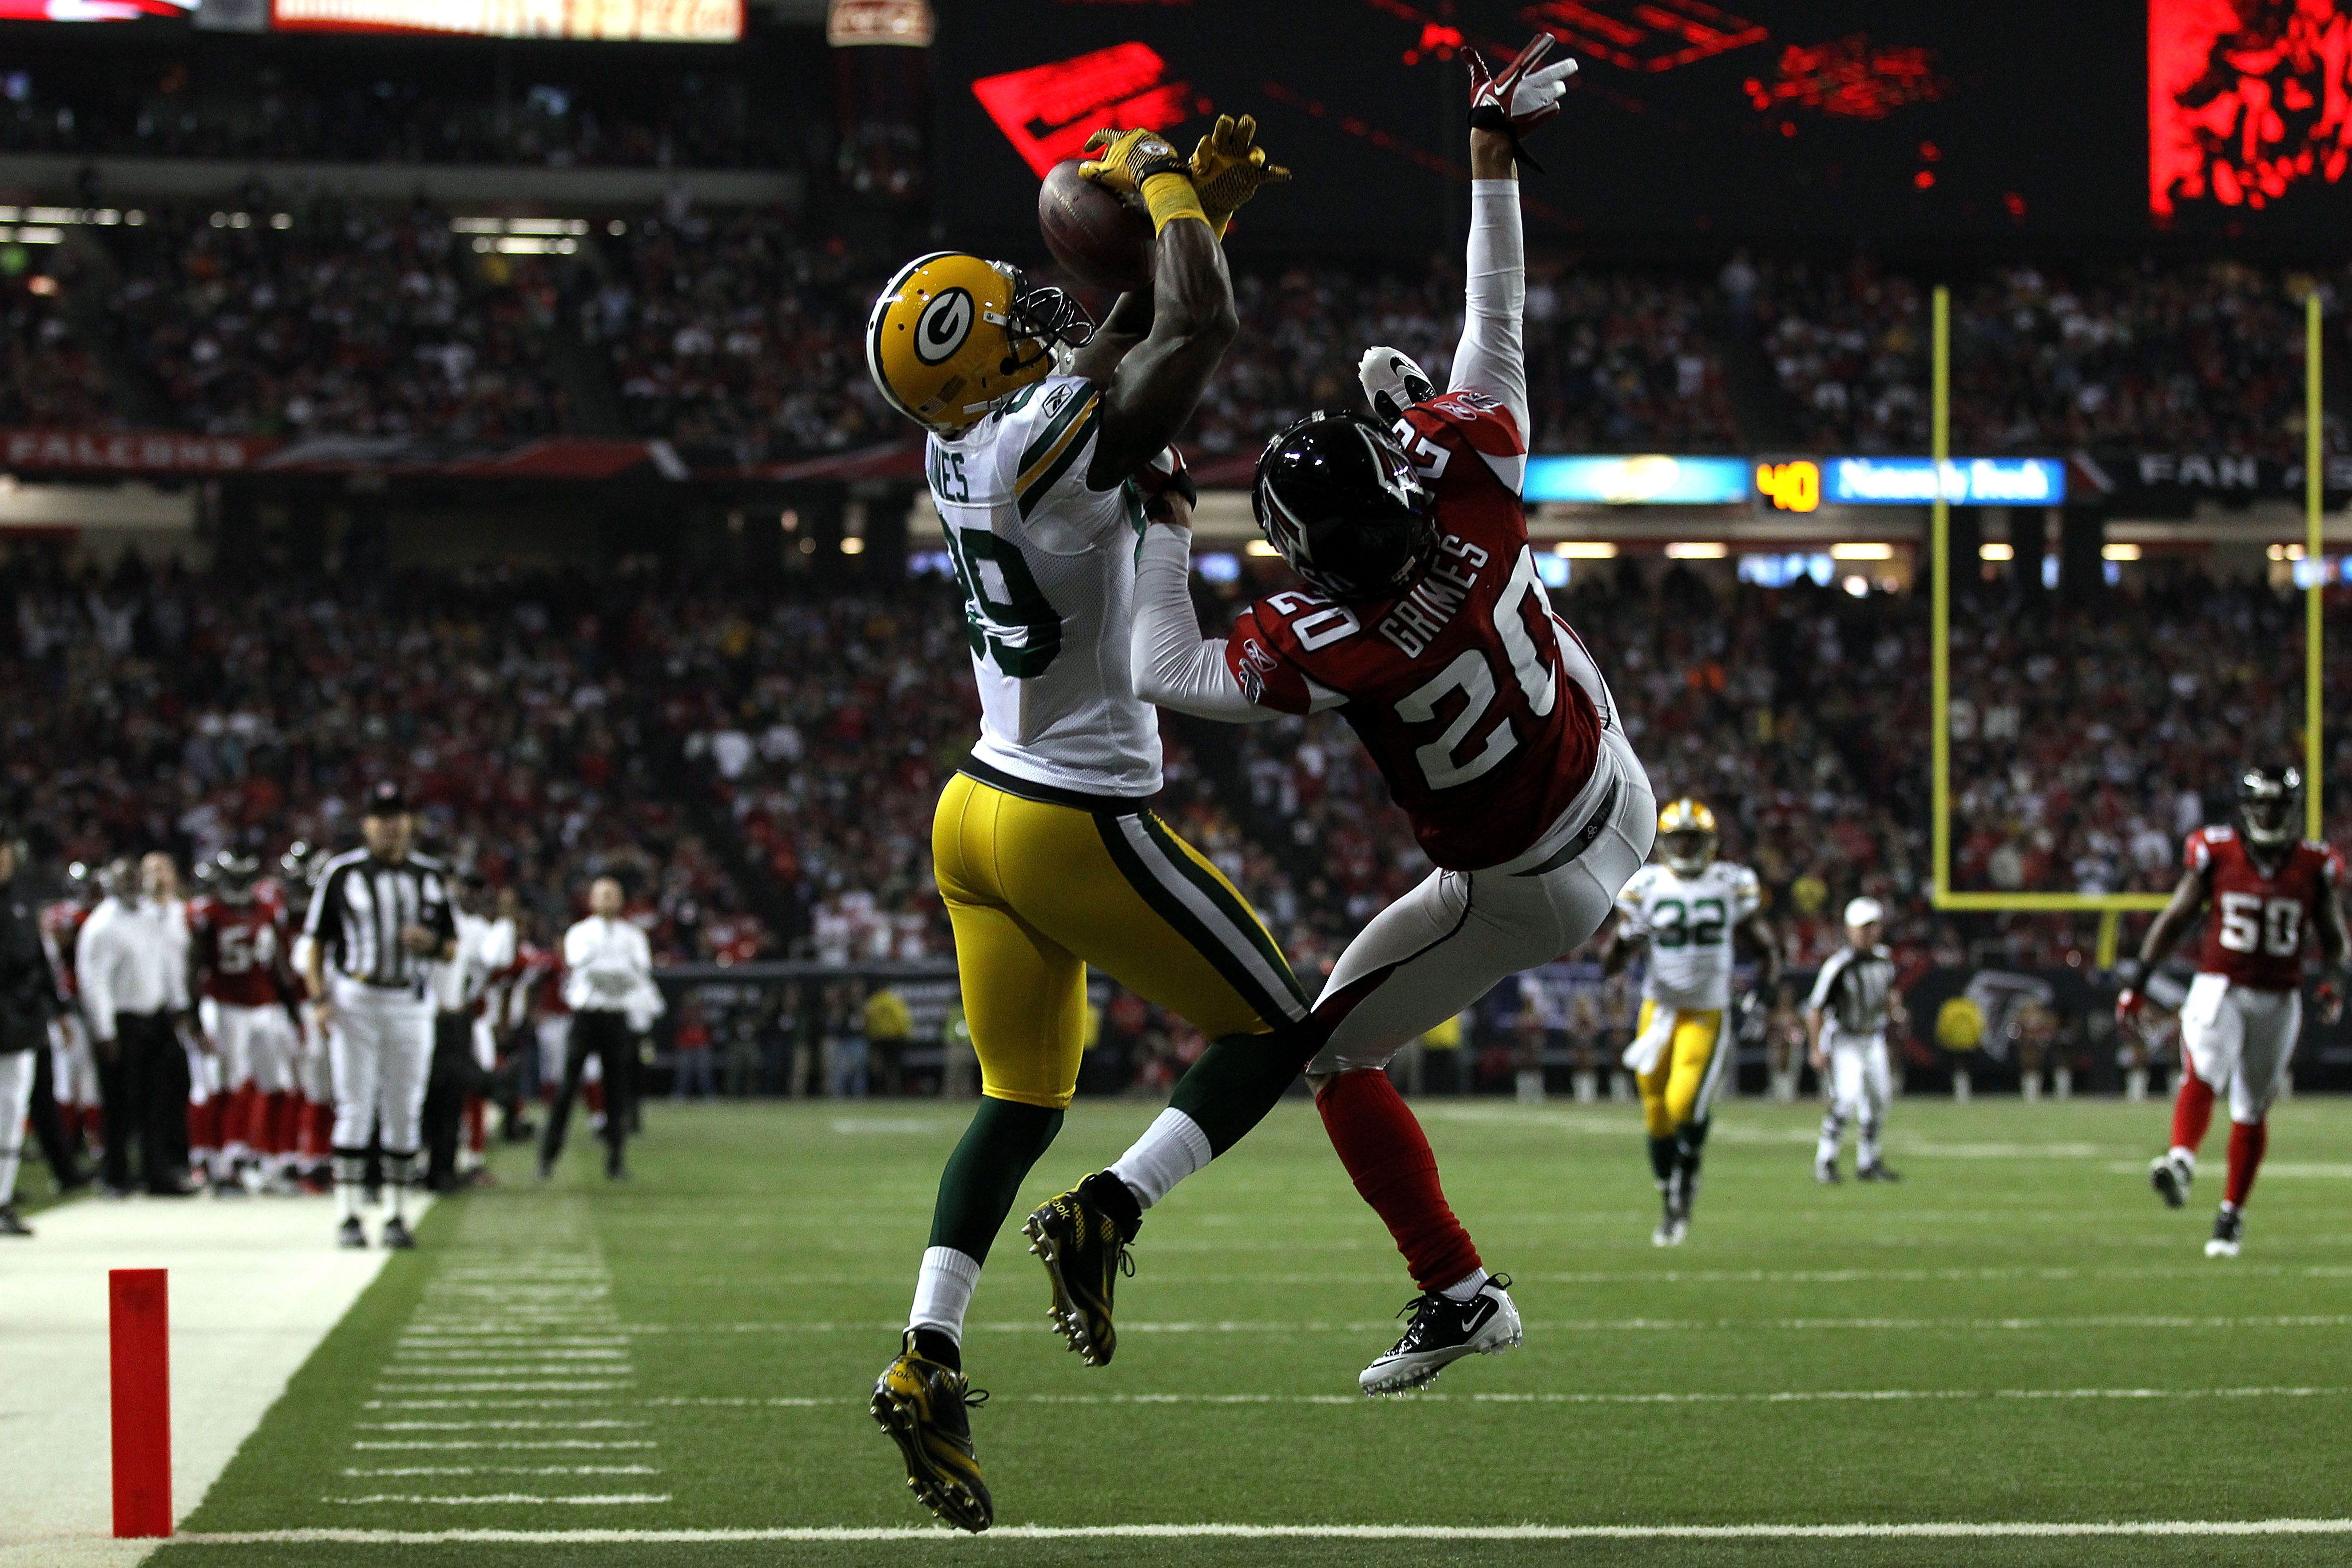 ATLANTA, GA - JANUARY 15:  James Jones #89 of the Green Bay Packers scores a 20-yard touchdown reception in the second quarter against Atari Bigby #20 of the Atlanta Falcons during their 2011 NFC divisional playoff game at Georgia Dome on January 15, 2011